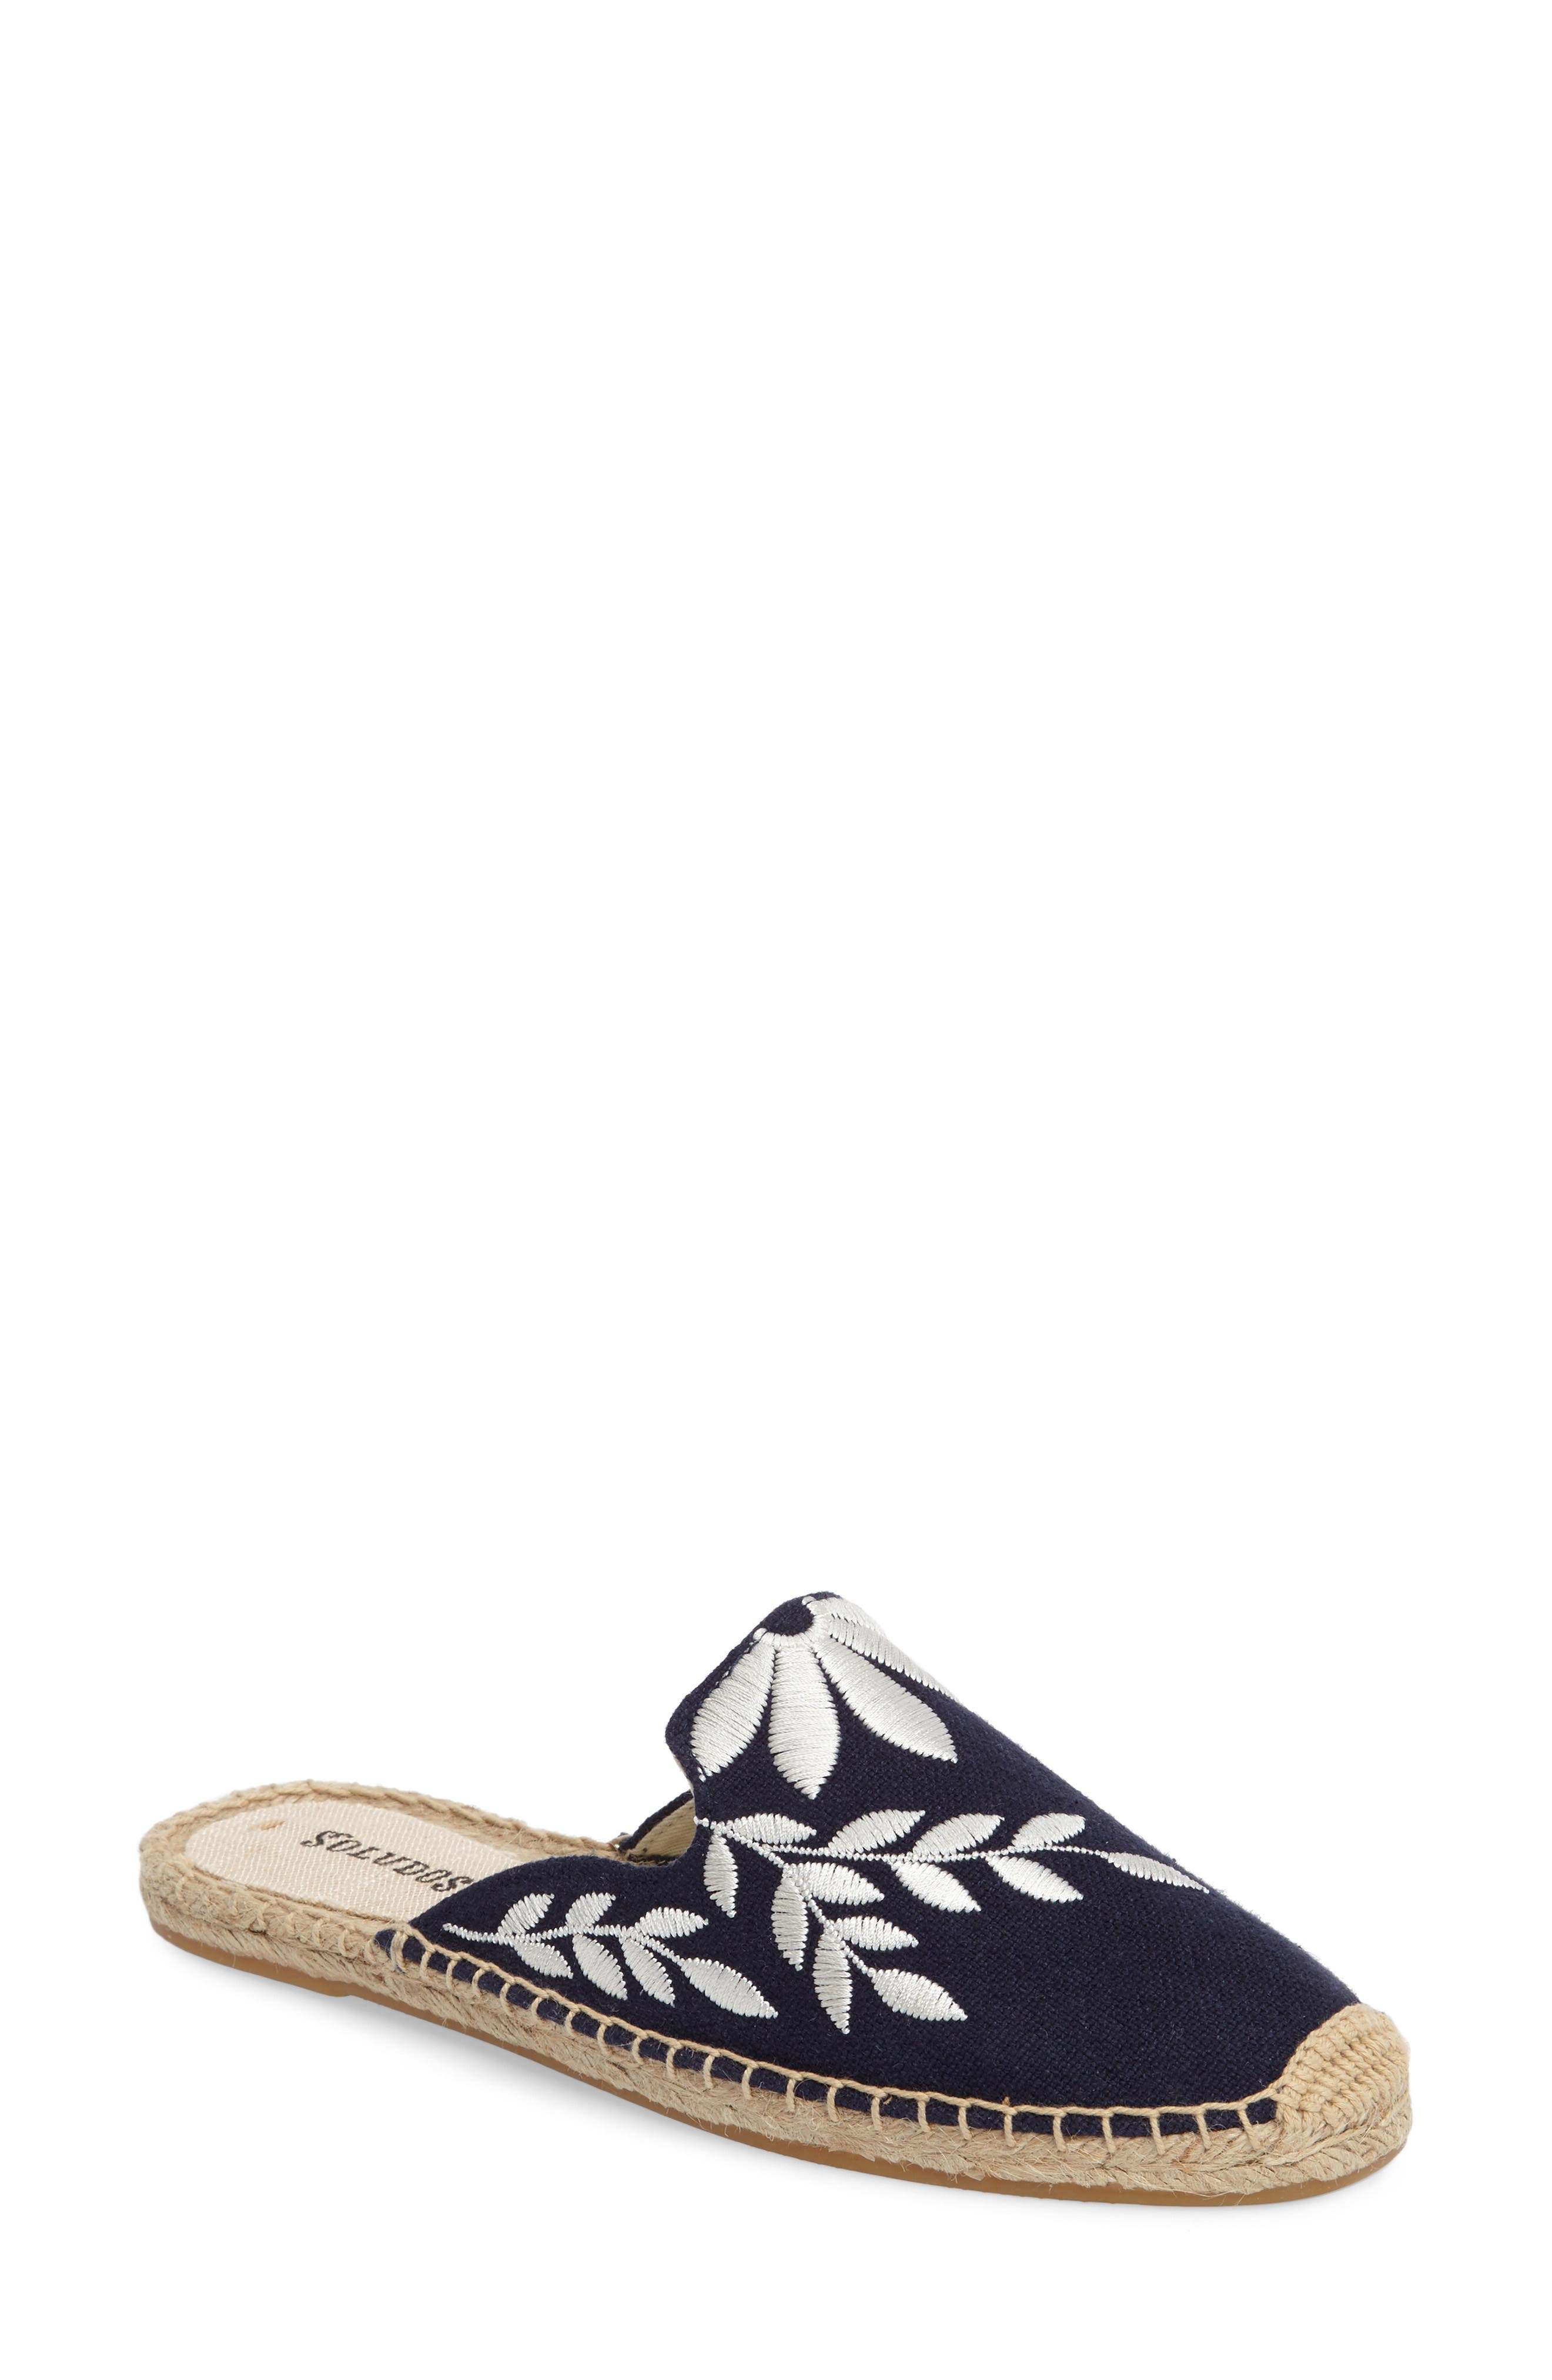 Soludos Embroidered Espadrille Mule (Women)